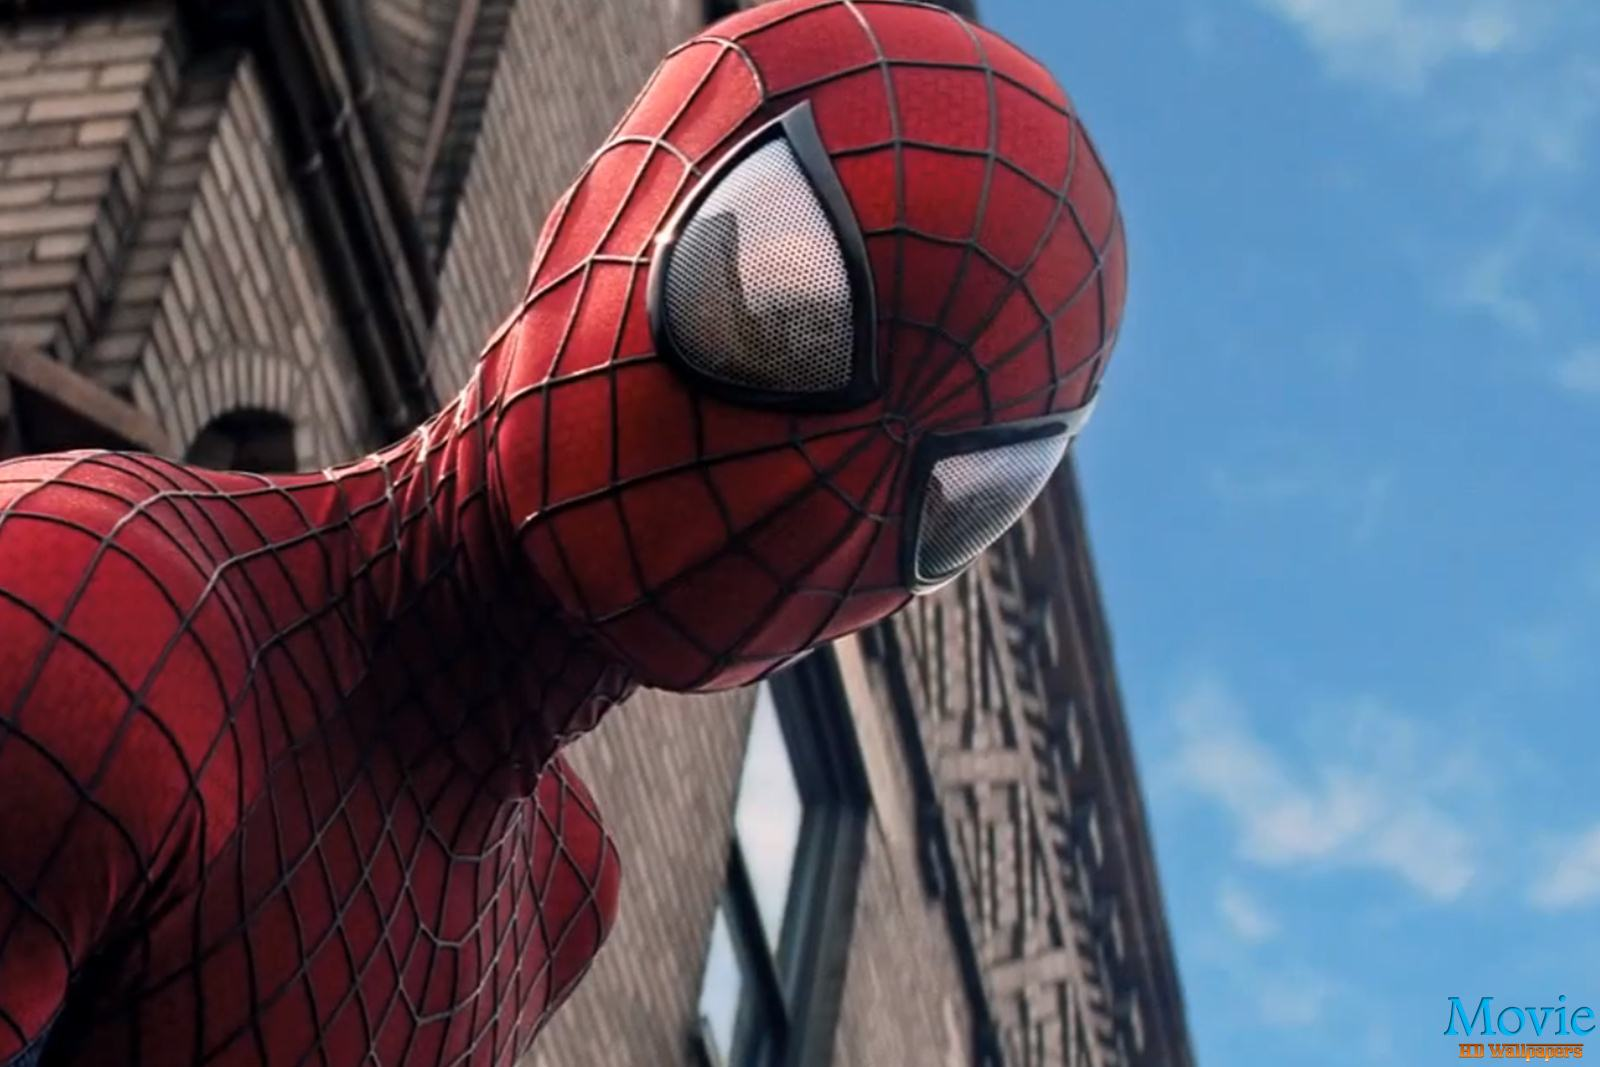 Spiderman Live Wallpaper Hd: The Amazing Spider Man 2 Wallpapers (42 Wallpapers